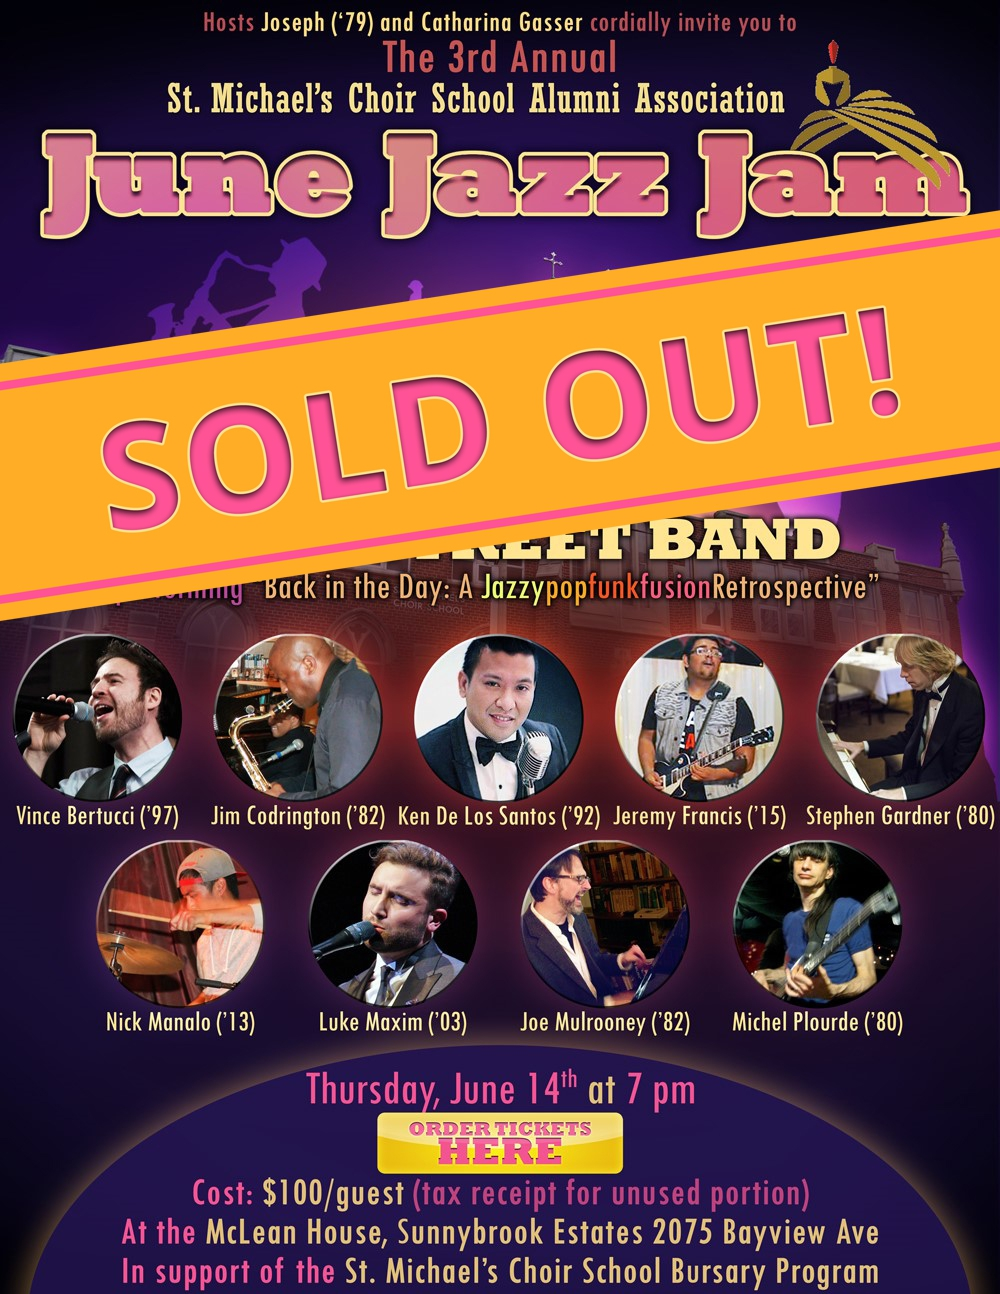 June Jazz Jam Sold Out V3